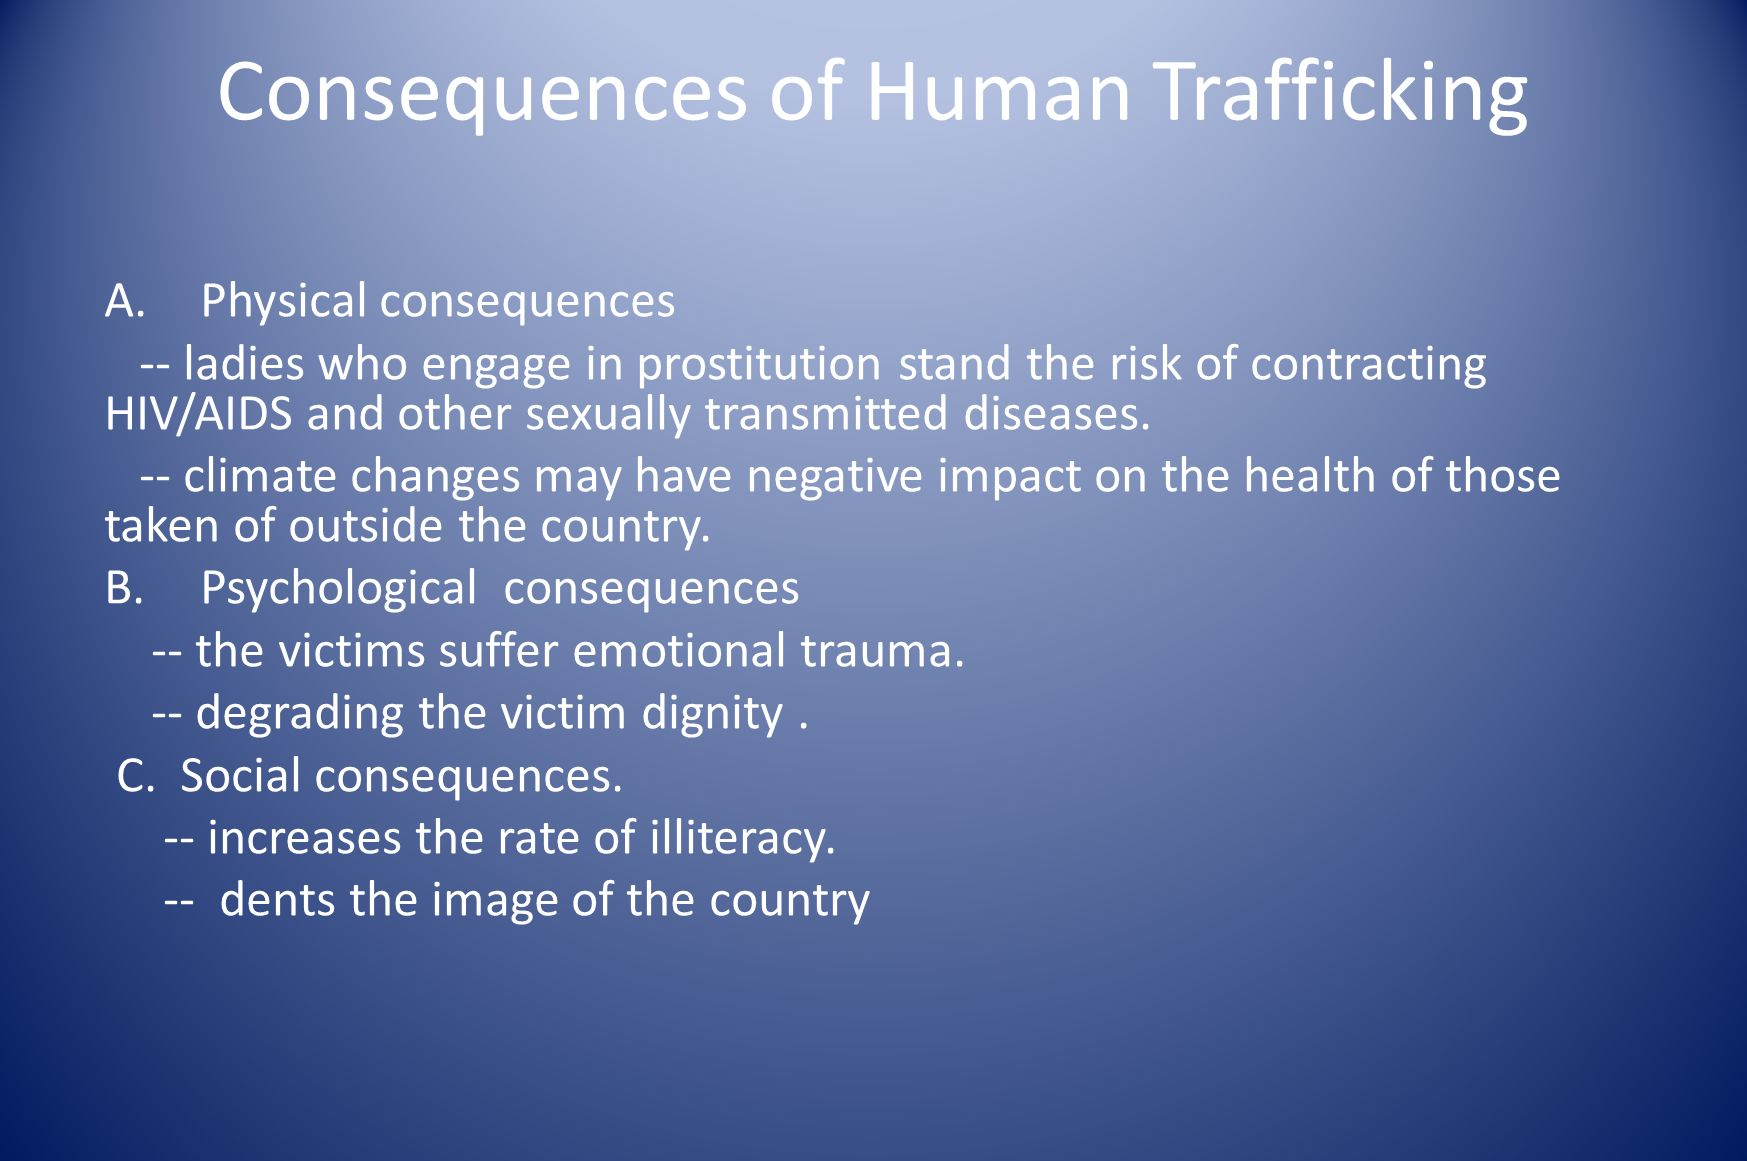 Consequences of Human Trafficking